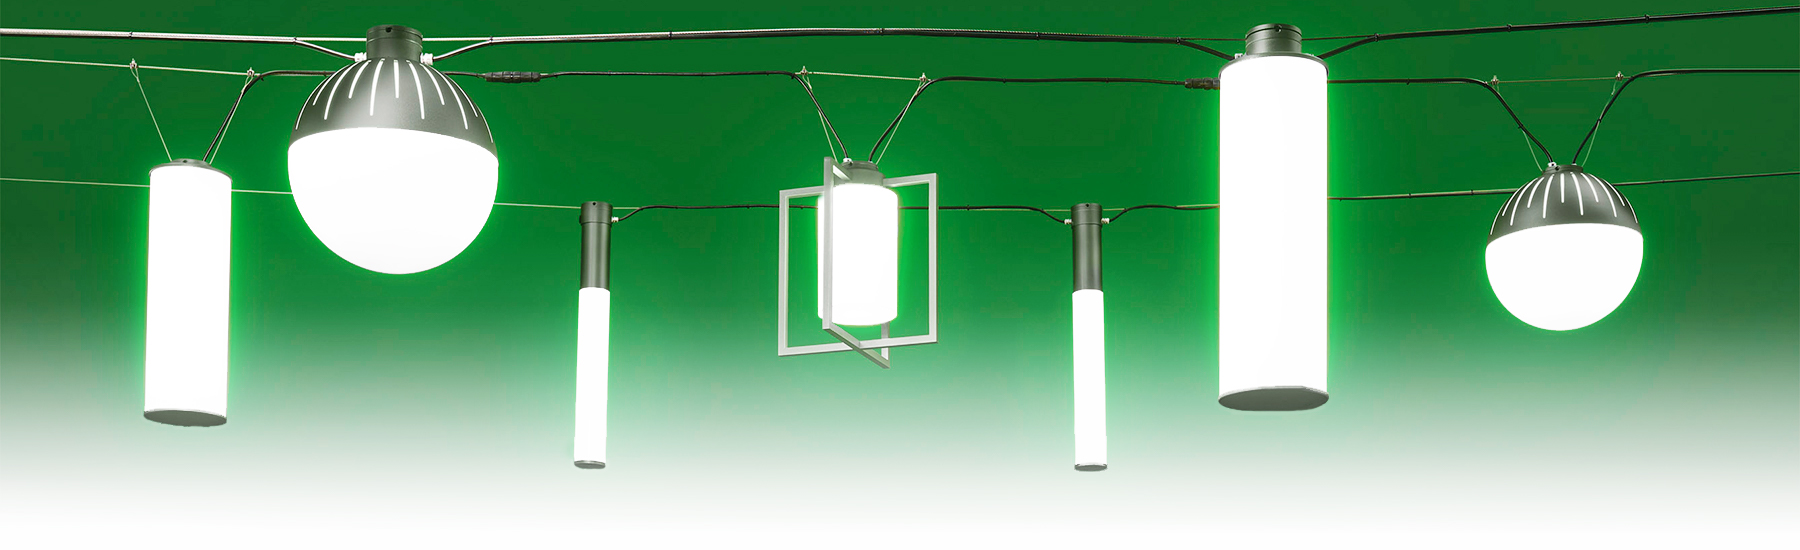 Outdoor pendant lighting creates eye-catching catenary designs